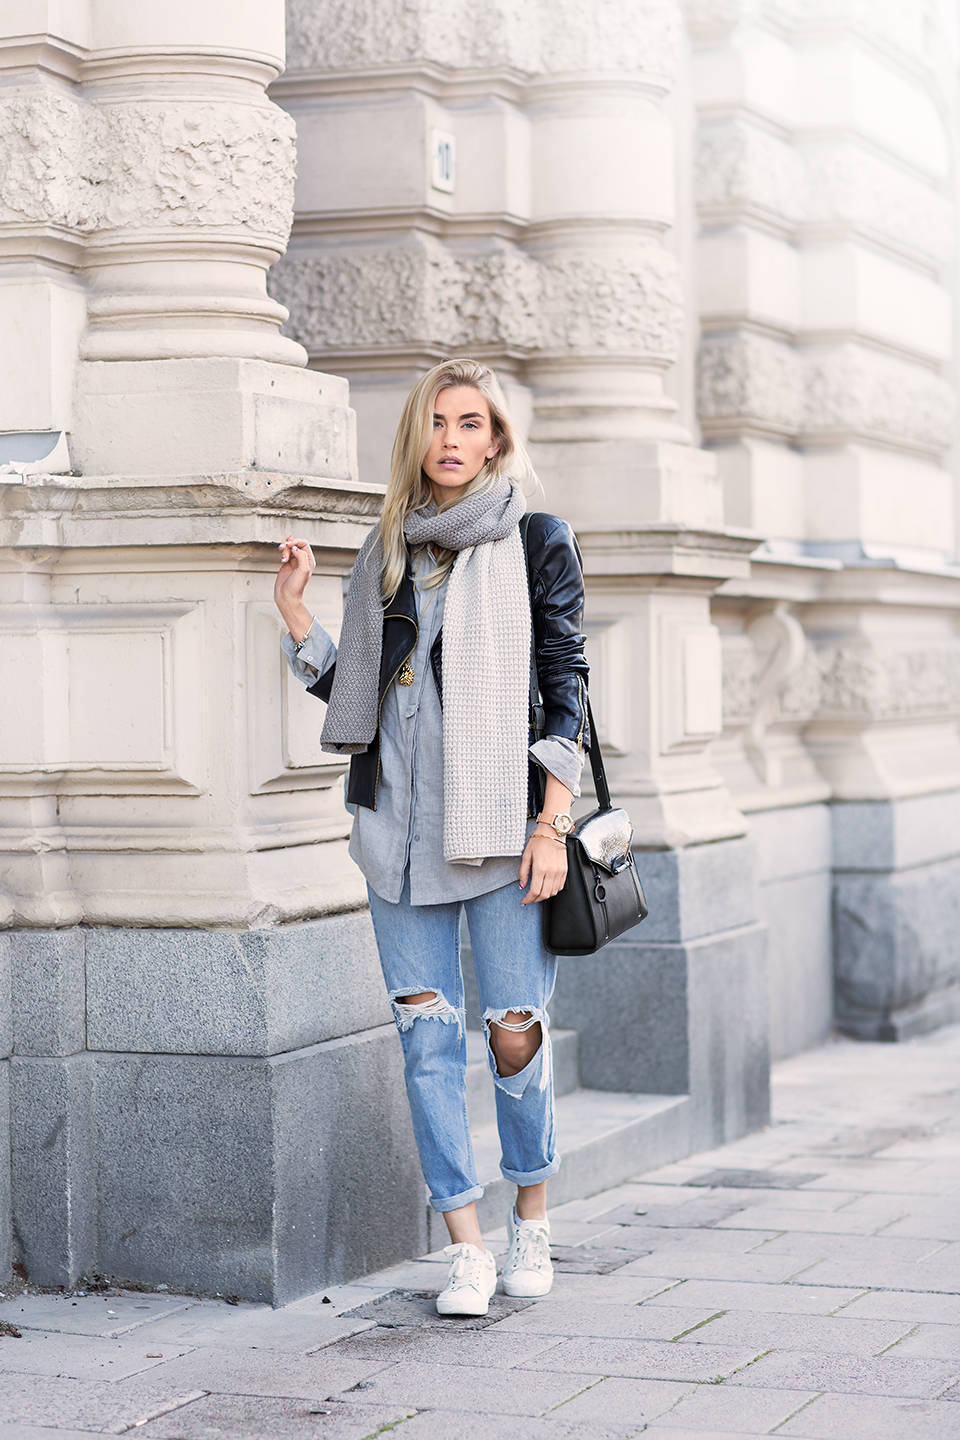 Elsa Ekman completes her look with an oversized scarf from G-Star. Jacket: Mango, Shirt:Gina Tricot, Necklace: Sophie by Sophie.